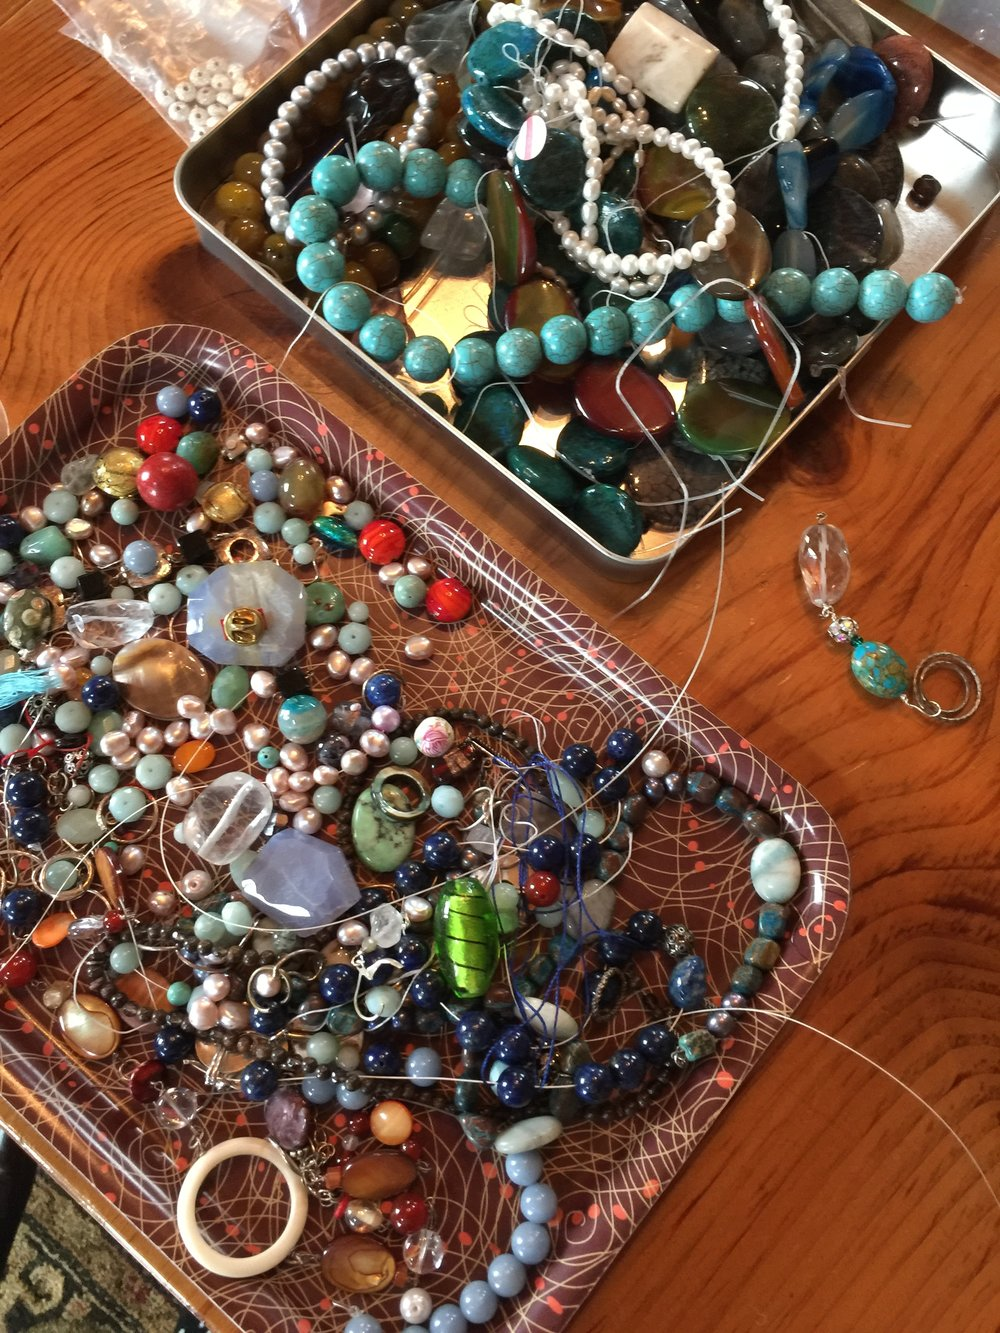 Beads, Booze and Beyond